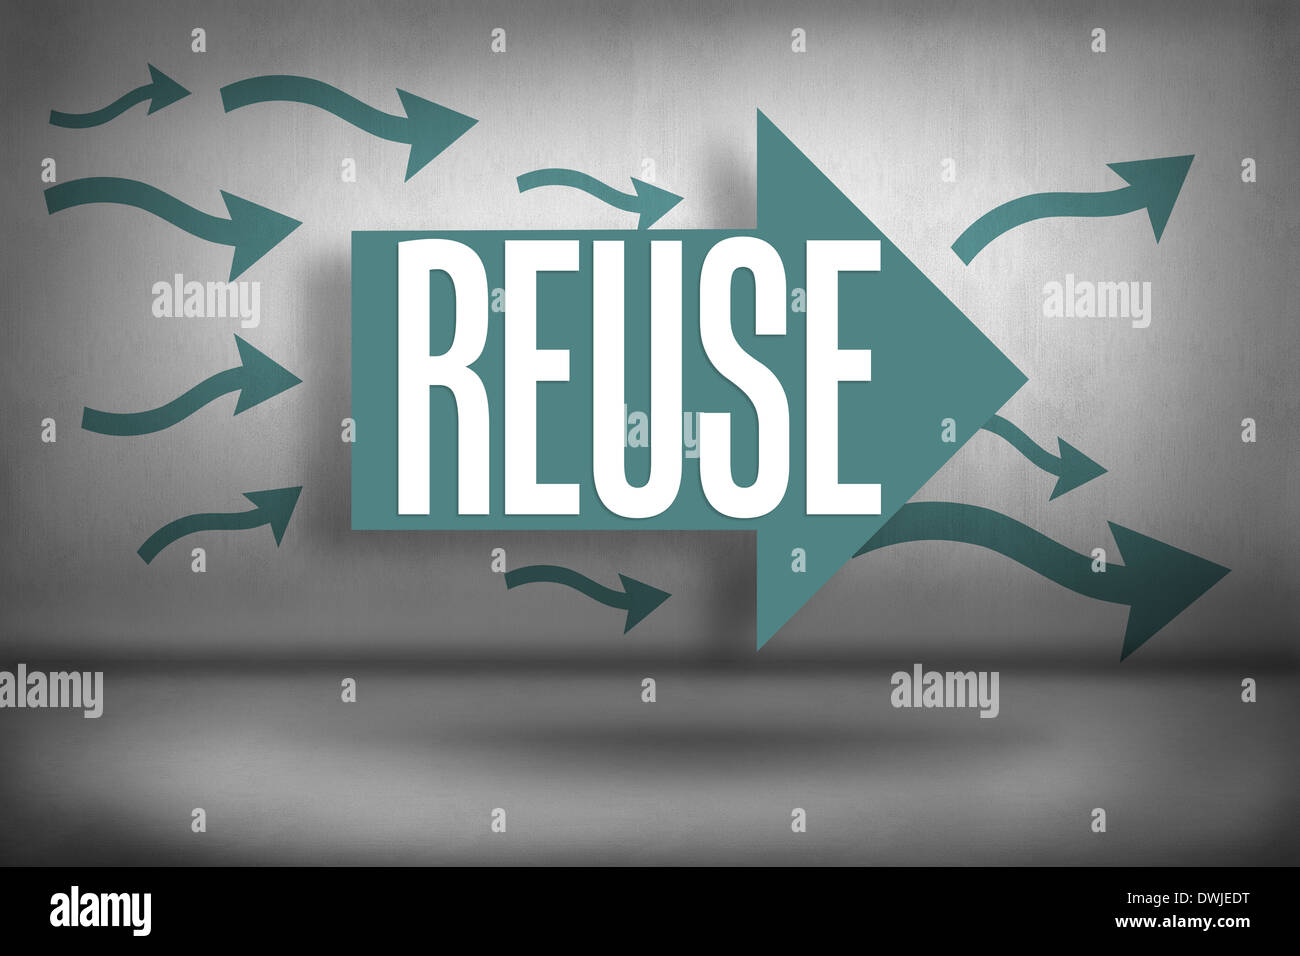 Reuse against arrows pointing - Stock Image